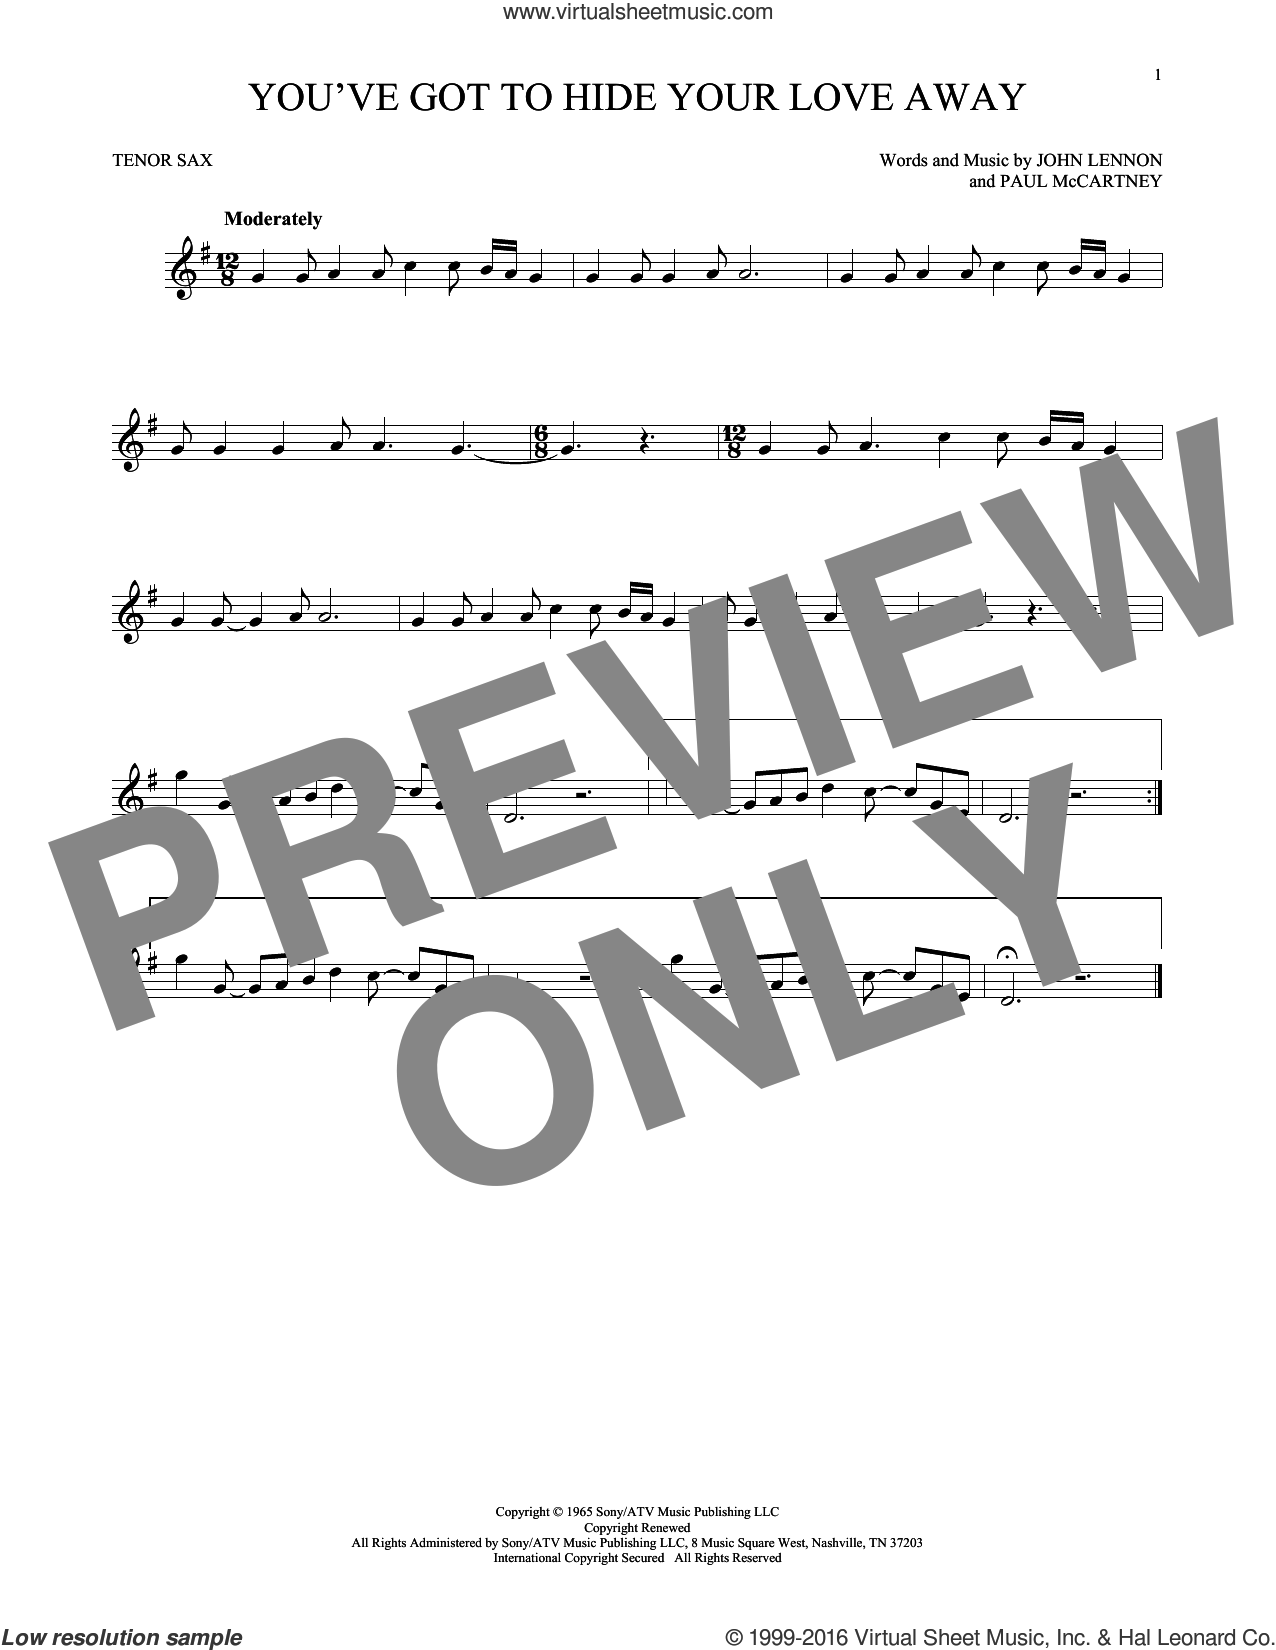 You've Got To Hide Your Love Away sheet music for tenor saxophone solo by The Beatles, John Lennon and Paul McCartney, intermediate. Score Image Preview.